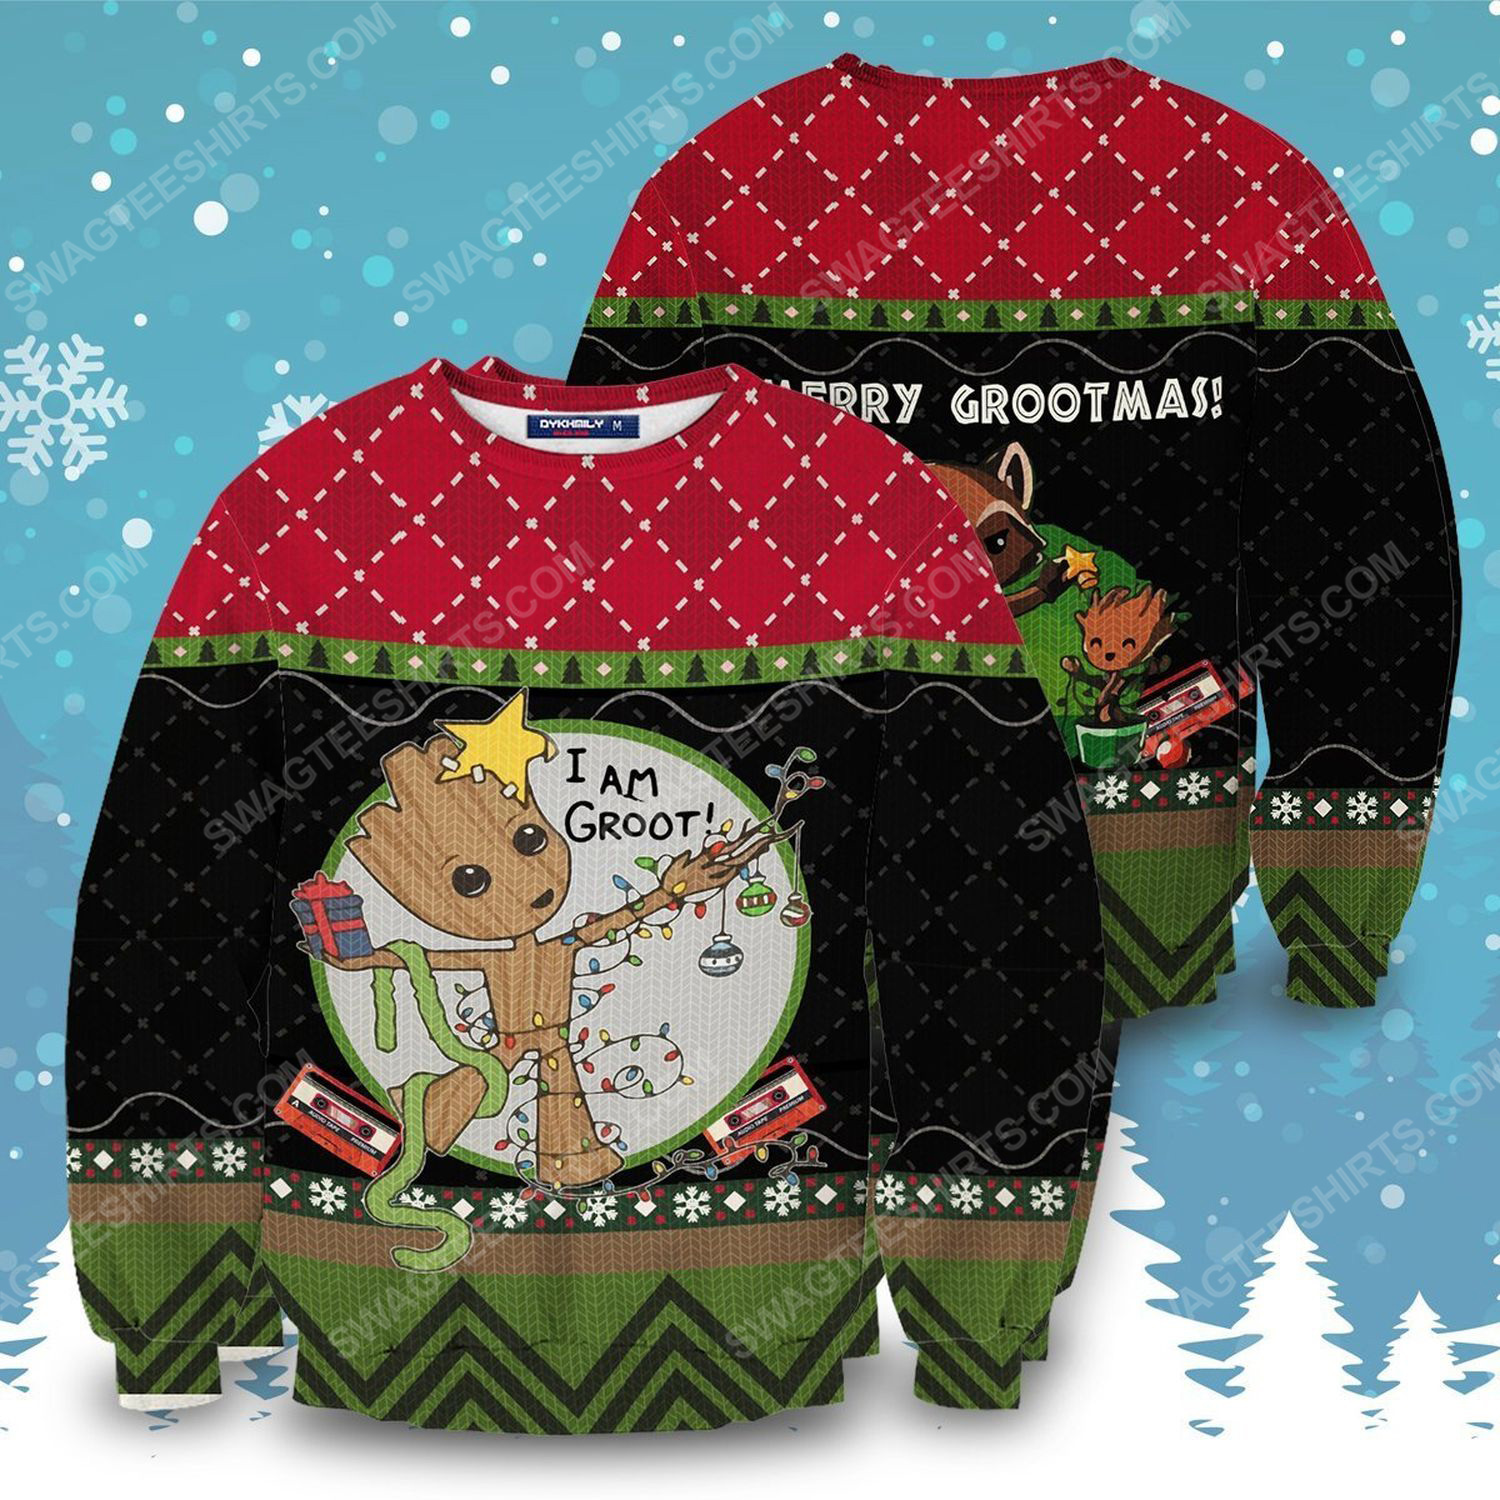 I am groot for christmas full print ugly christmas sweater 1